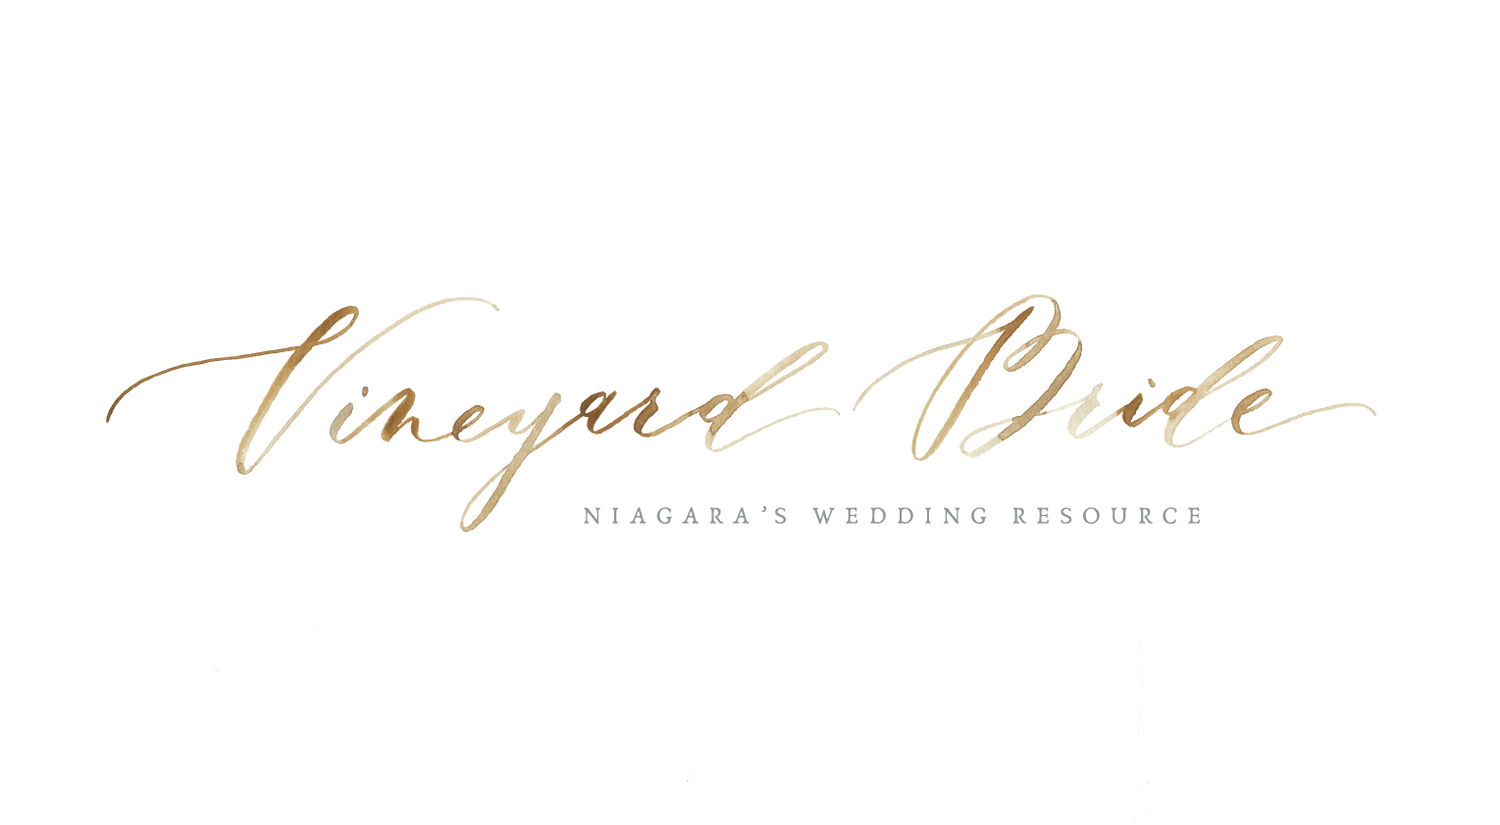 Vineyard Bride - Niagara's Wedding Resource